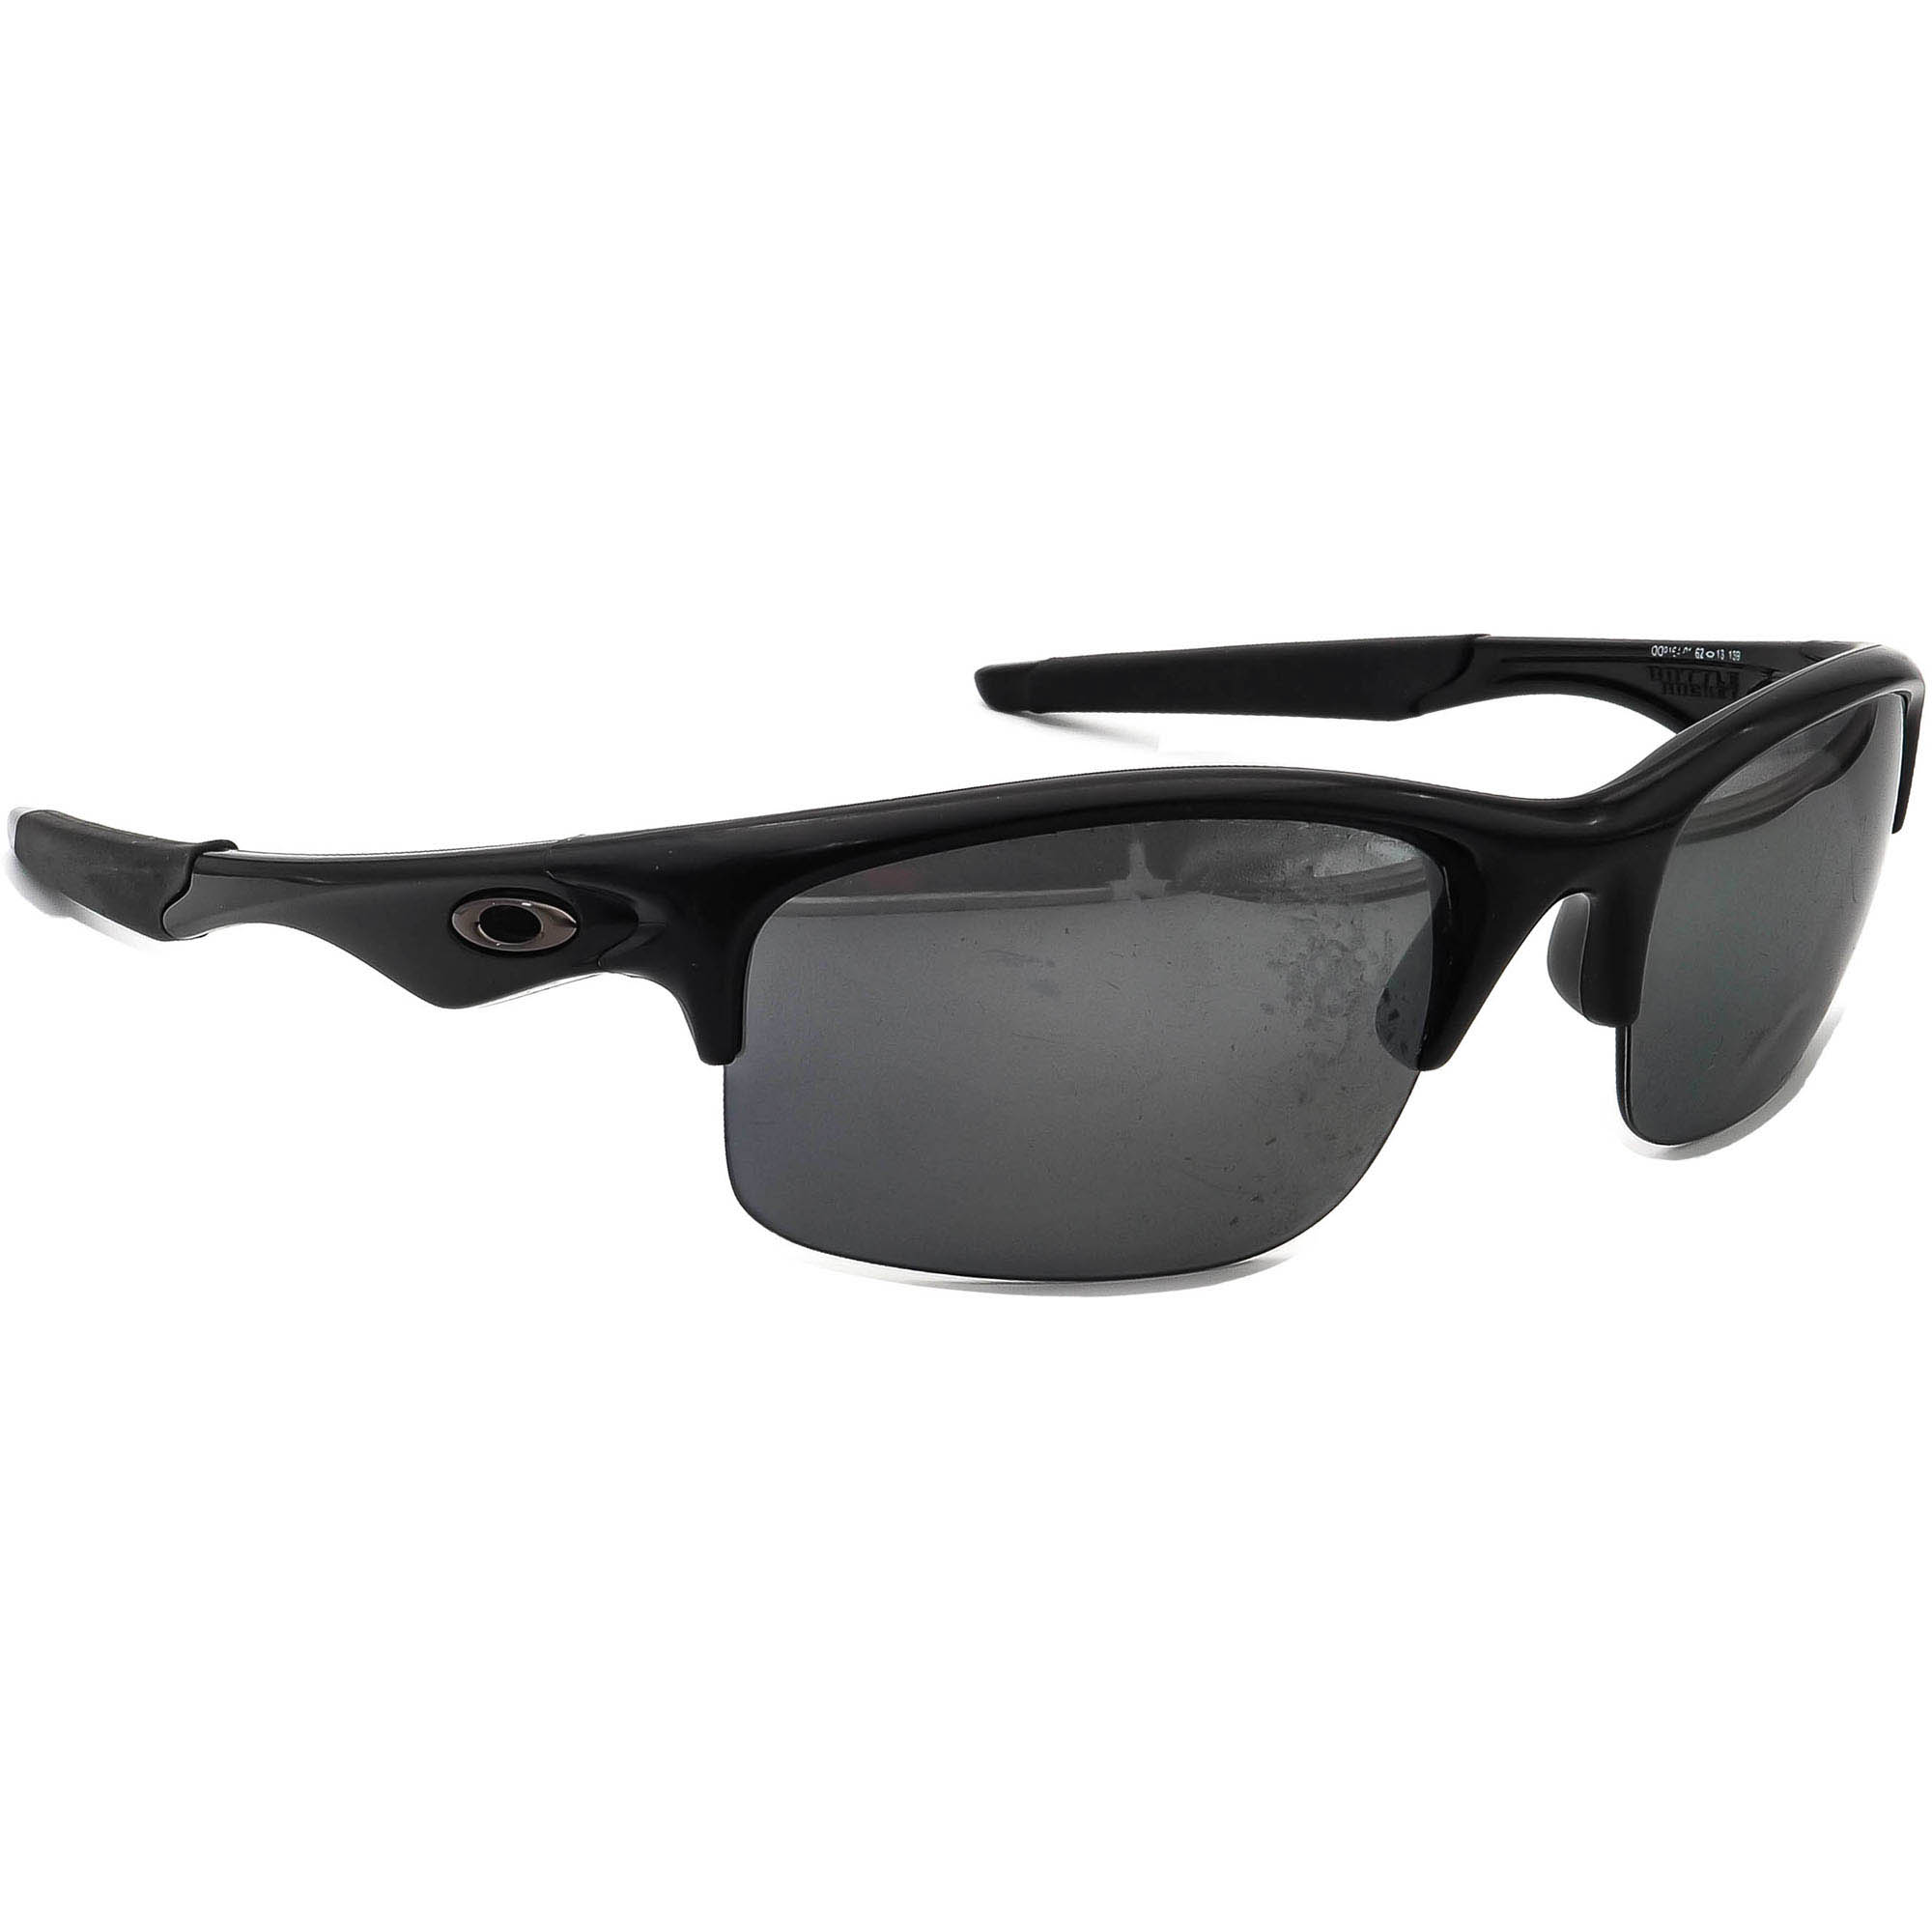 Oakley OO9164-01 Bottle Rocket Sunglasses Frame Only